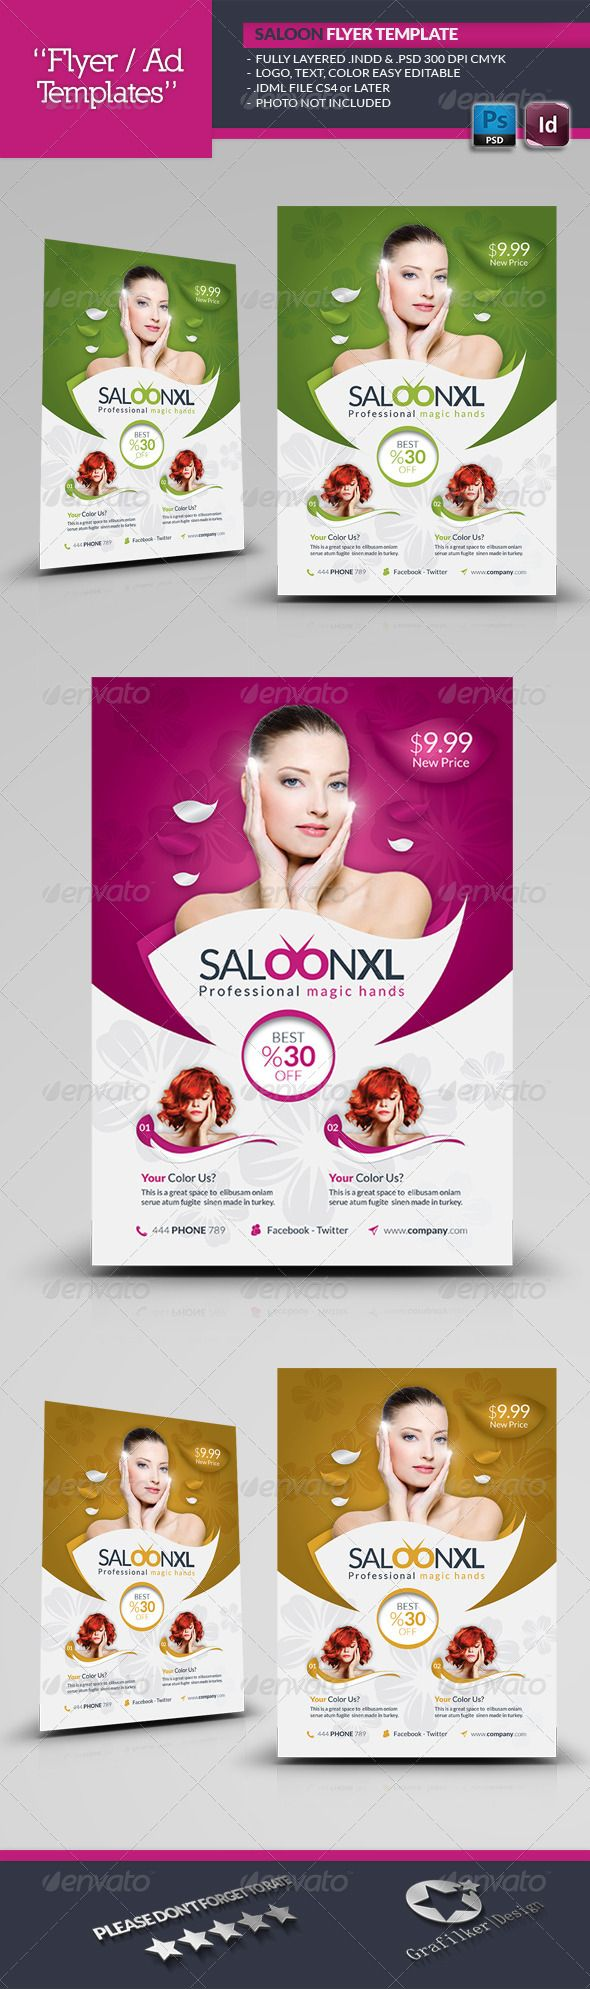 best images about flyer marketing corporate 17 best images about flyer marketing corporate business and fonts